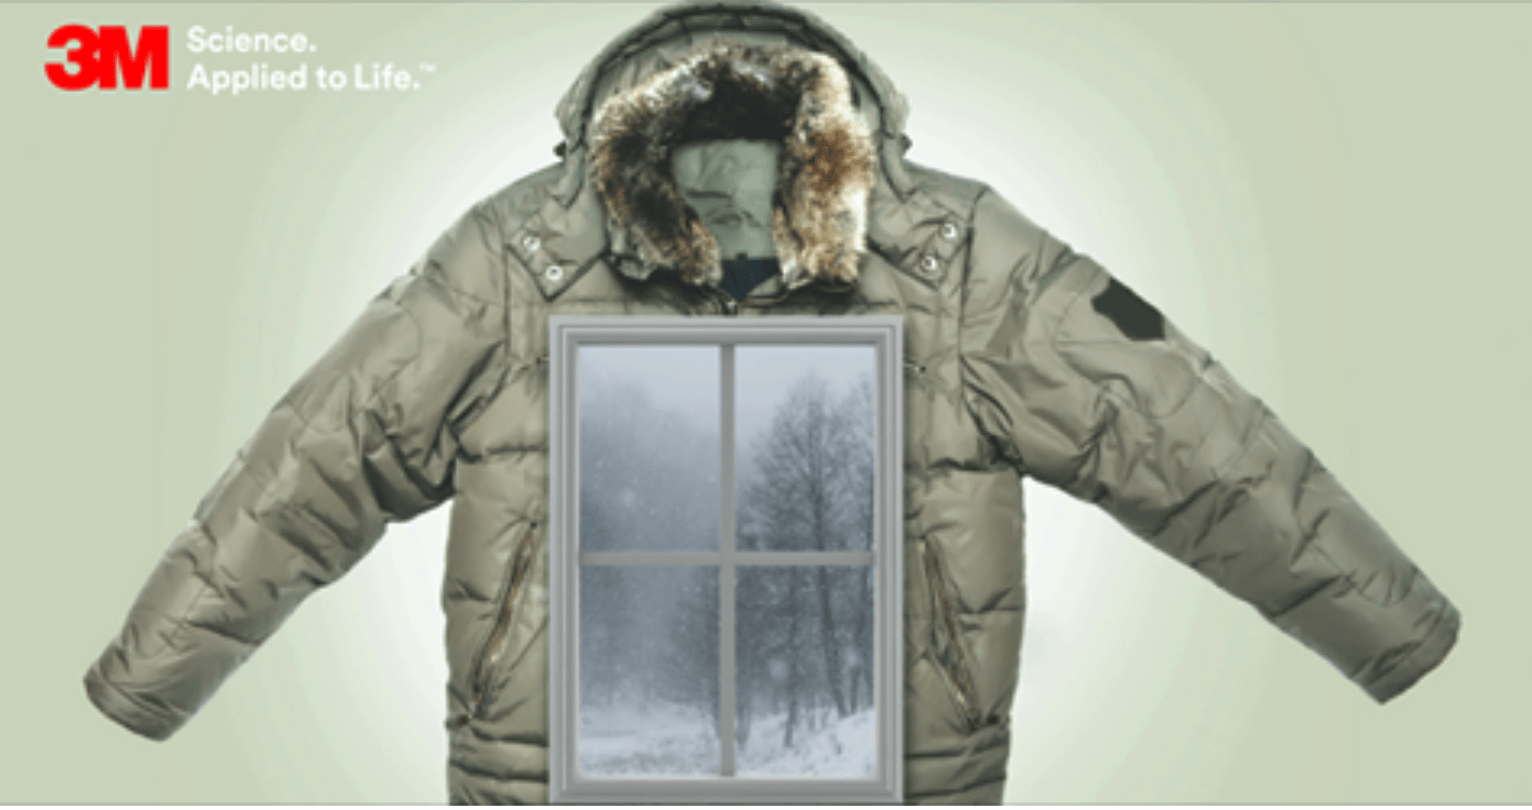 3M Thinsulate Window Insulation - A Winter Jacket for Home Windows - Home Window Tinting in Iowa City, Cedar Rapids, and the Quad Cities area of Iowa